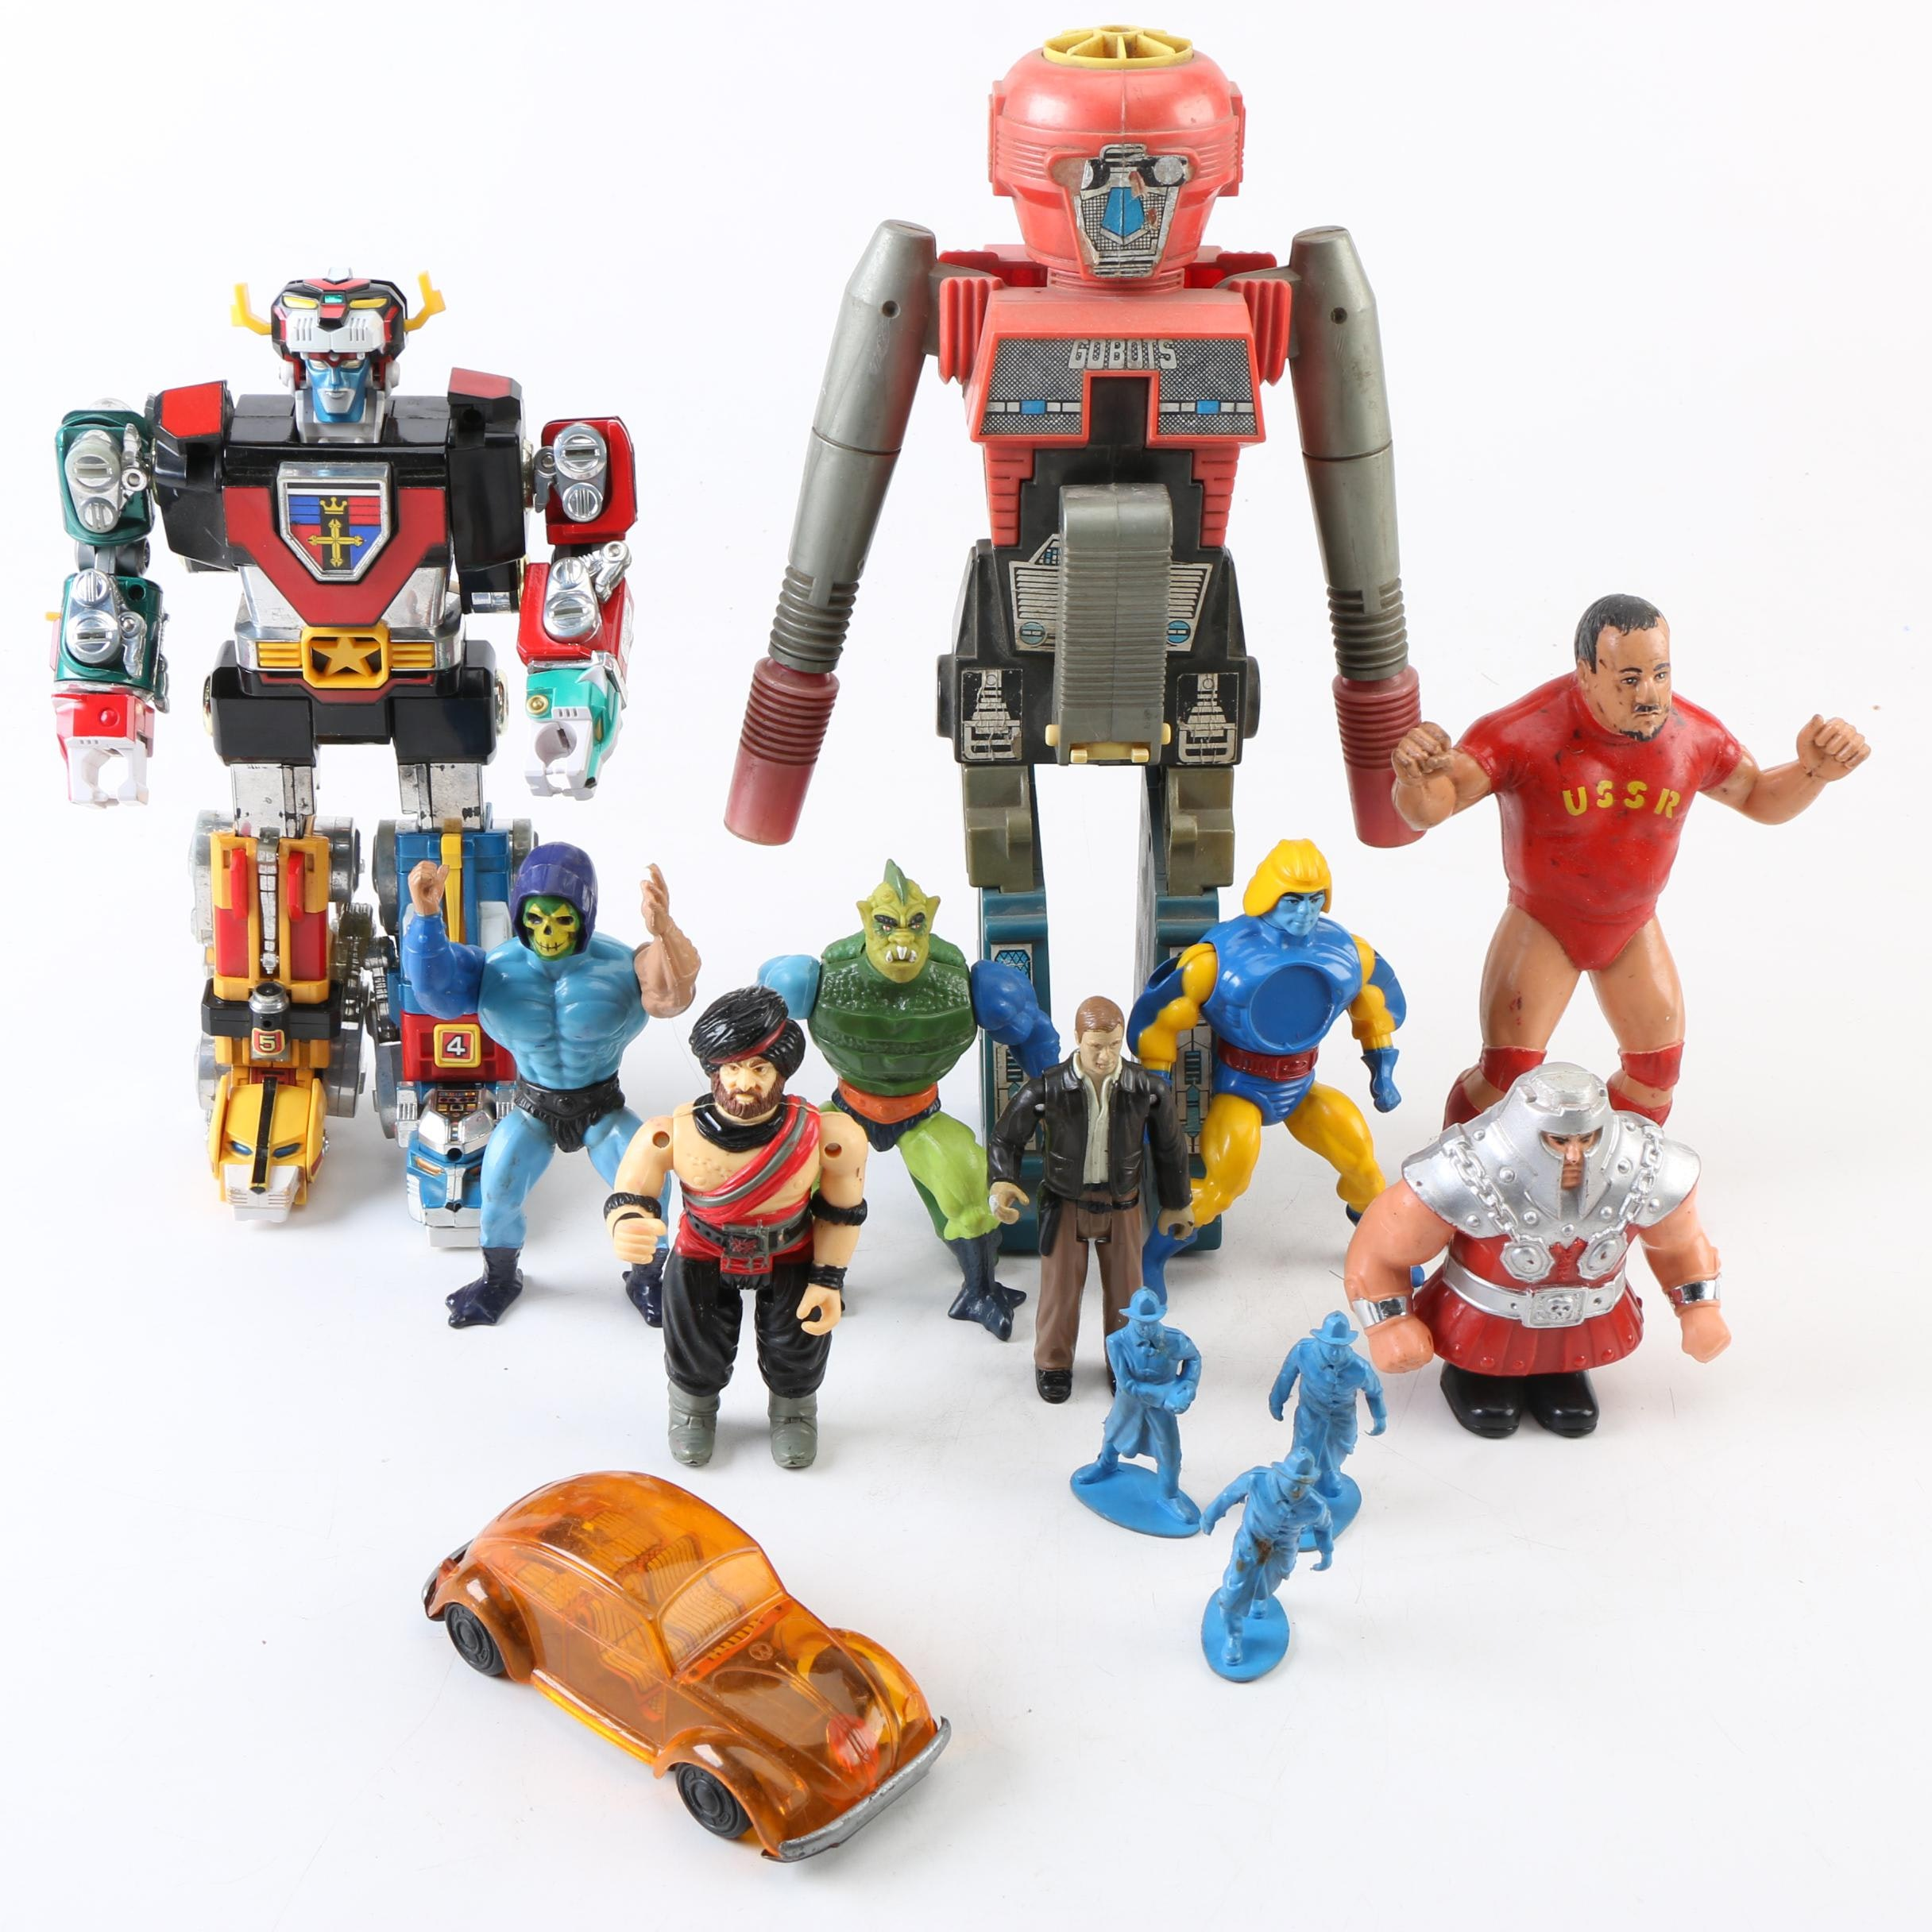 Voltron, Skeletor and Other Vintage Toys and Action Figures